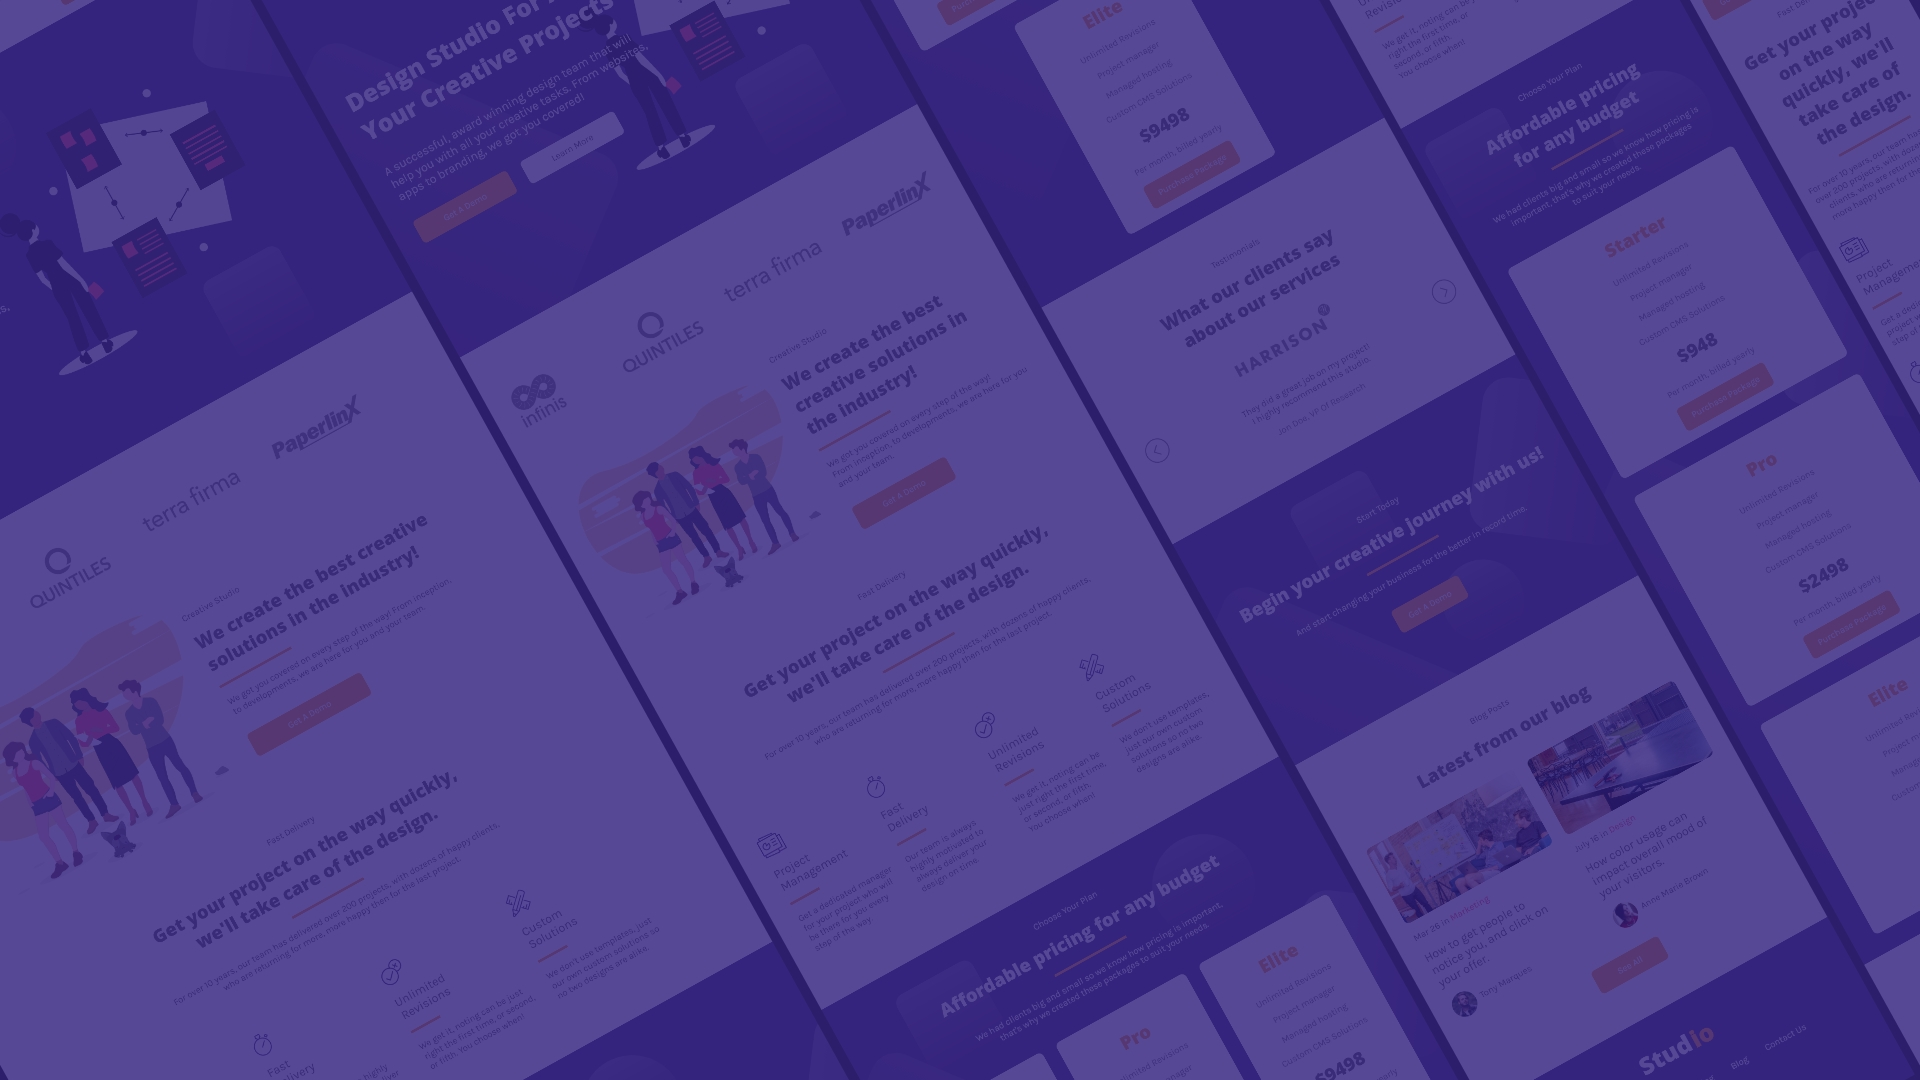 Responsive Website Design In Adobe Xd